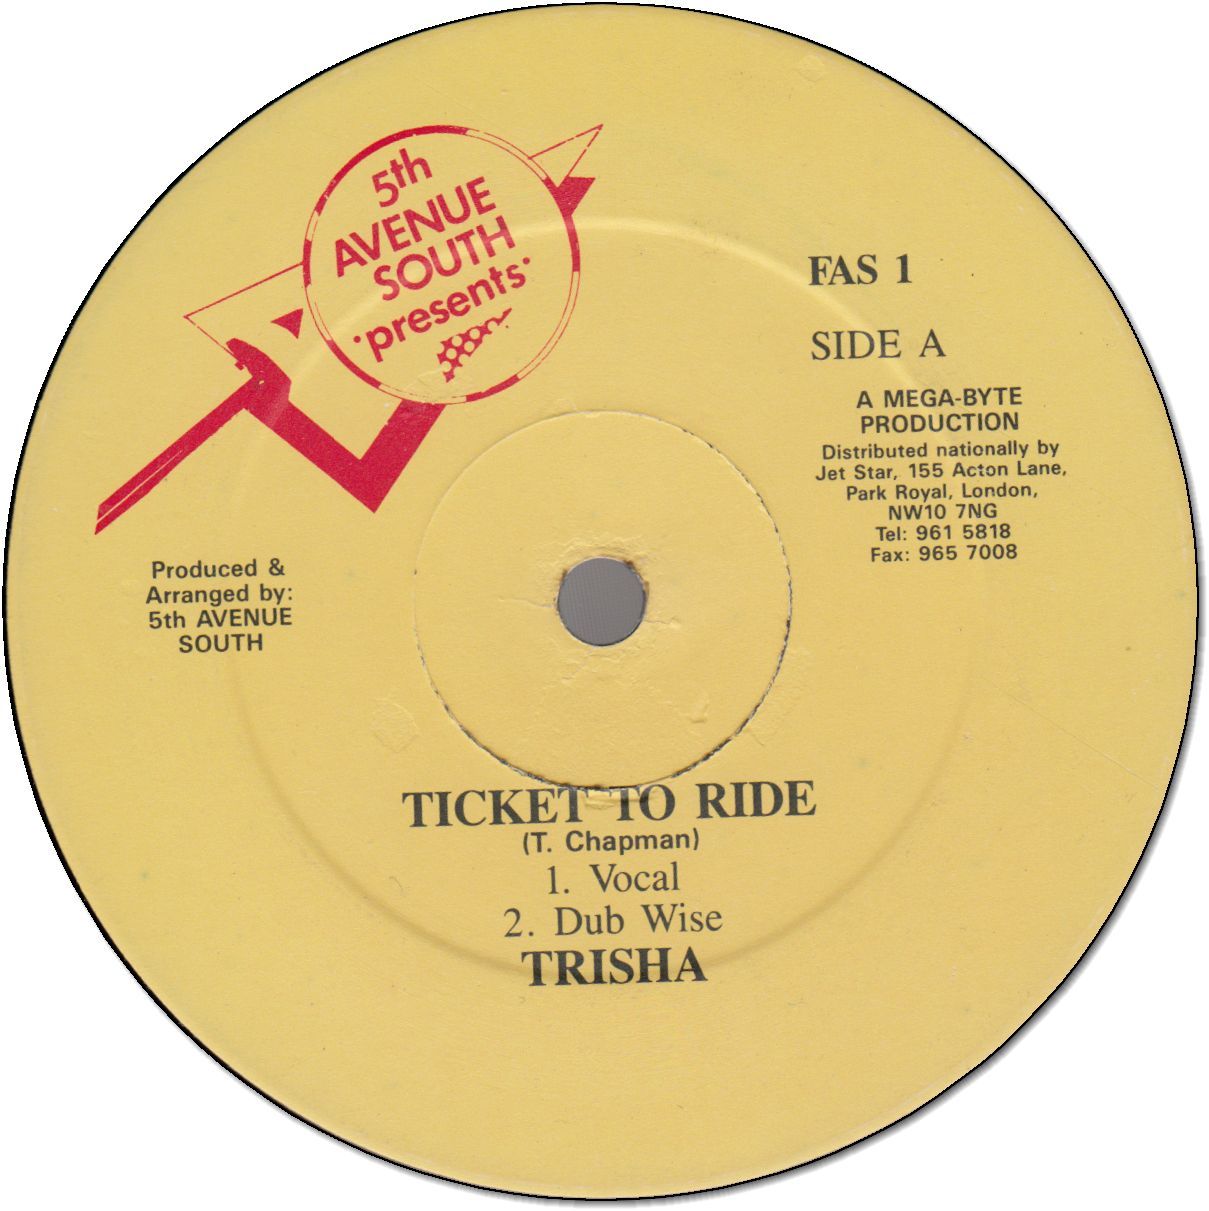 TICKET TO RIDE (VG+)